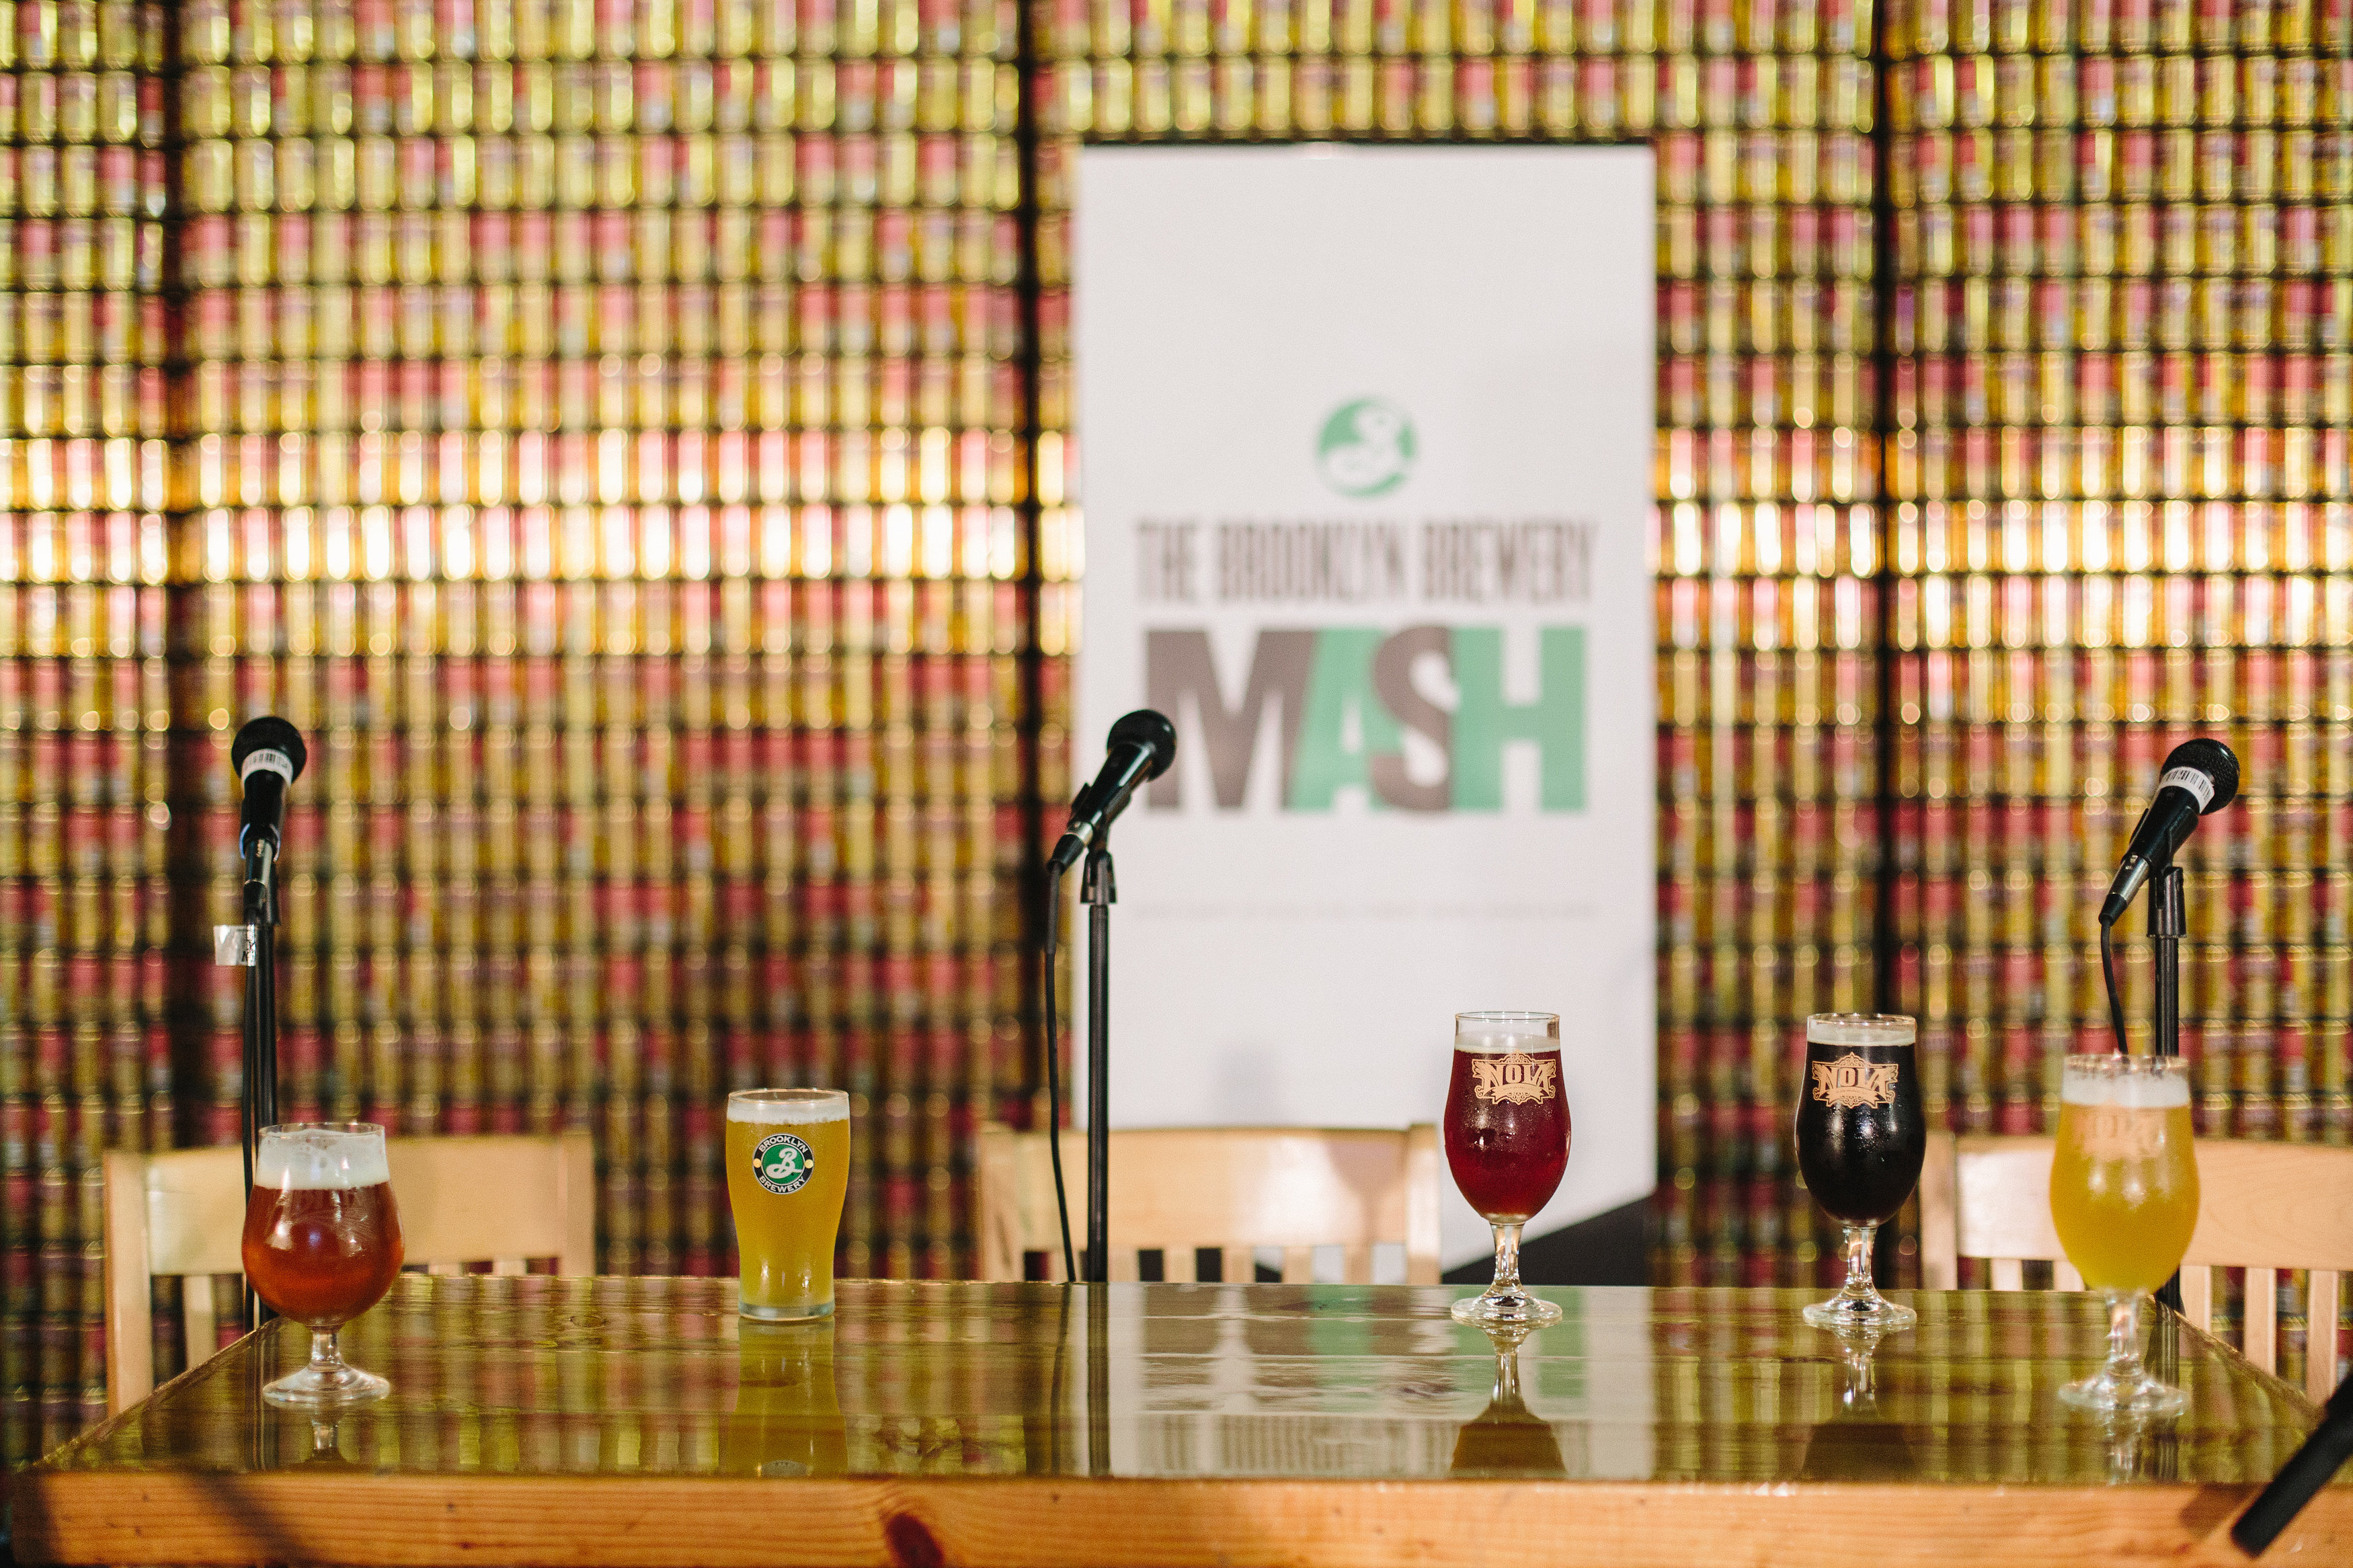 At last year's State of Craft Beer event, this year hosted again by NOLA Brewing.